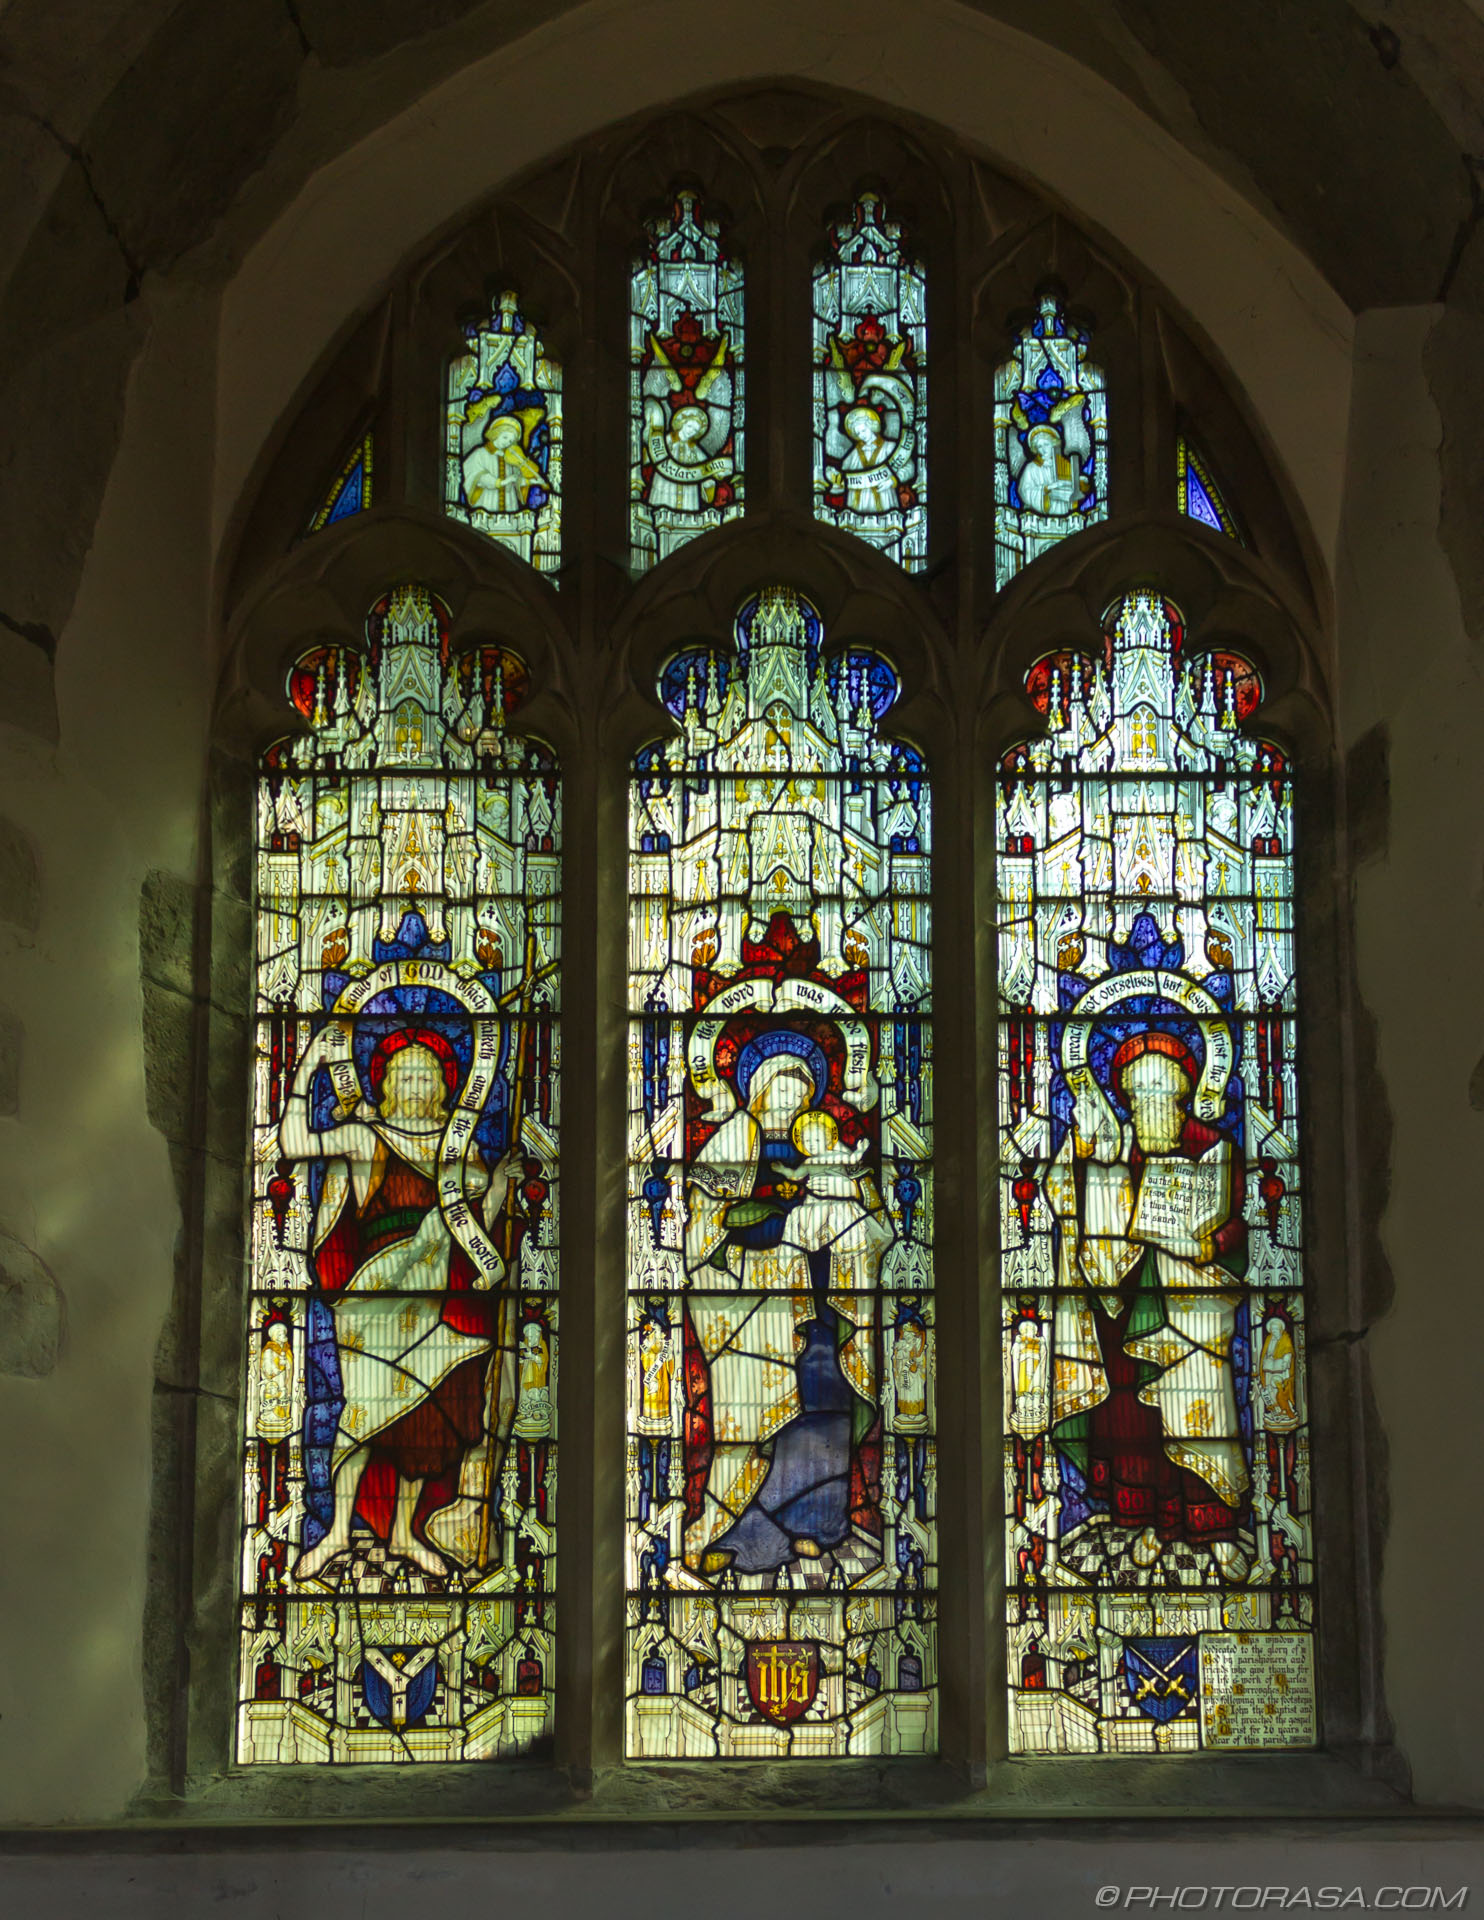 http://photorasa.com/st-marys-church-in-lenham/victorian-stained-glass-window/